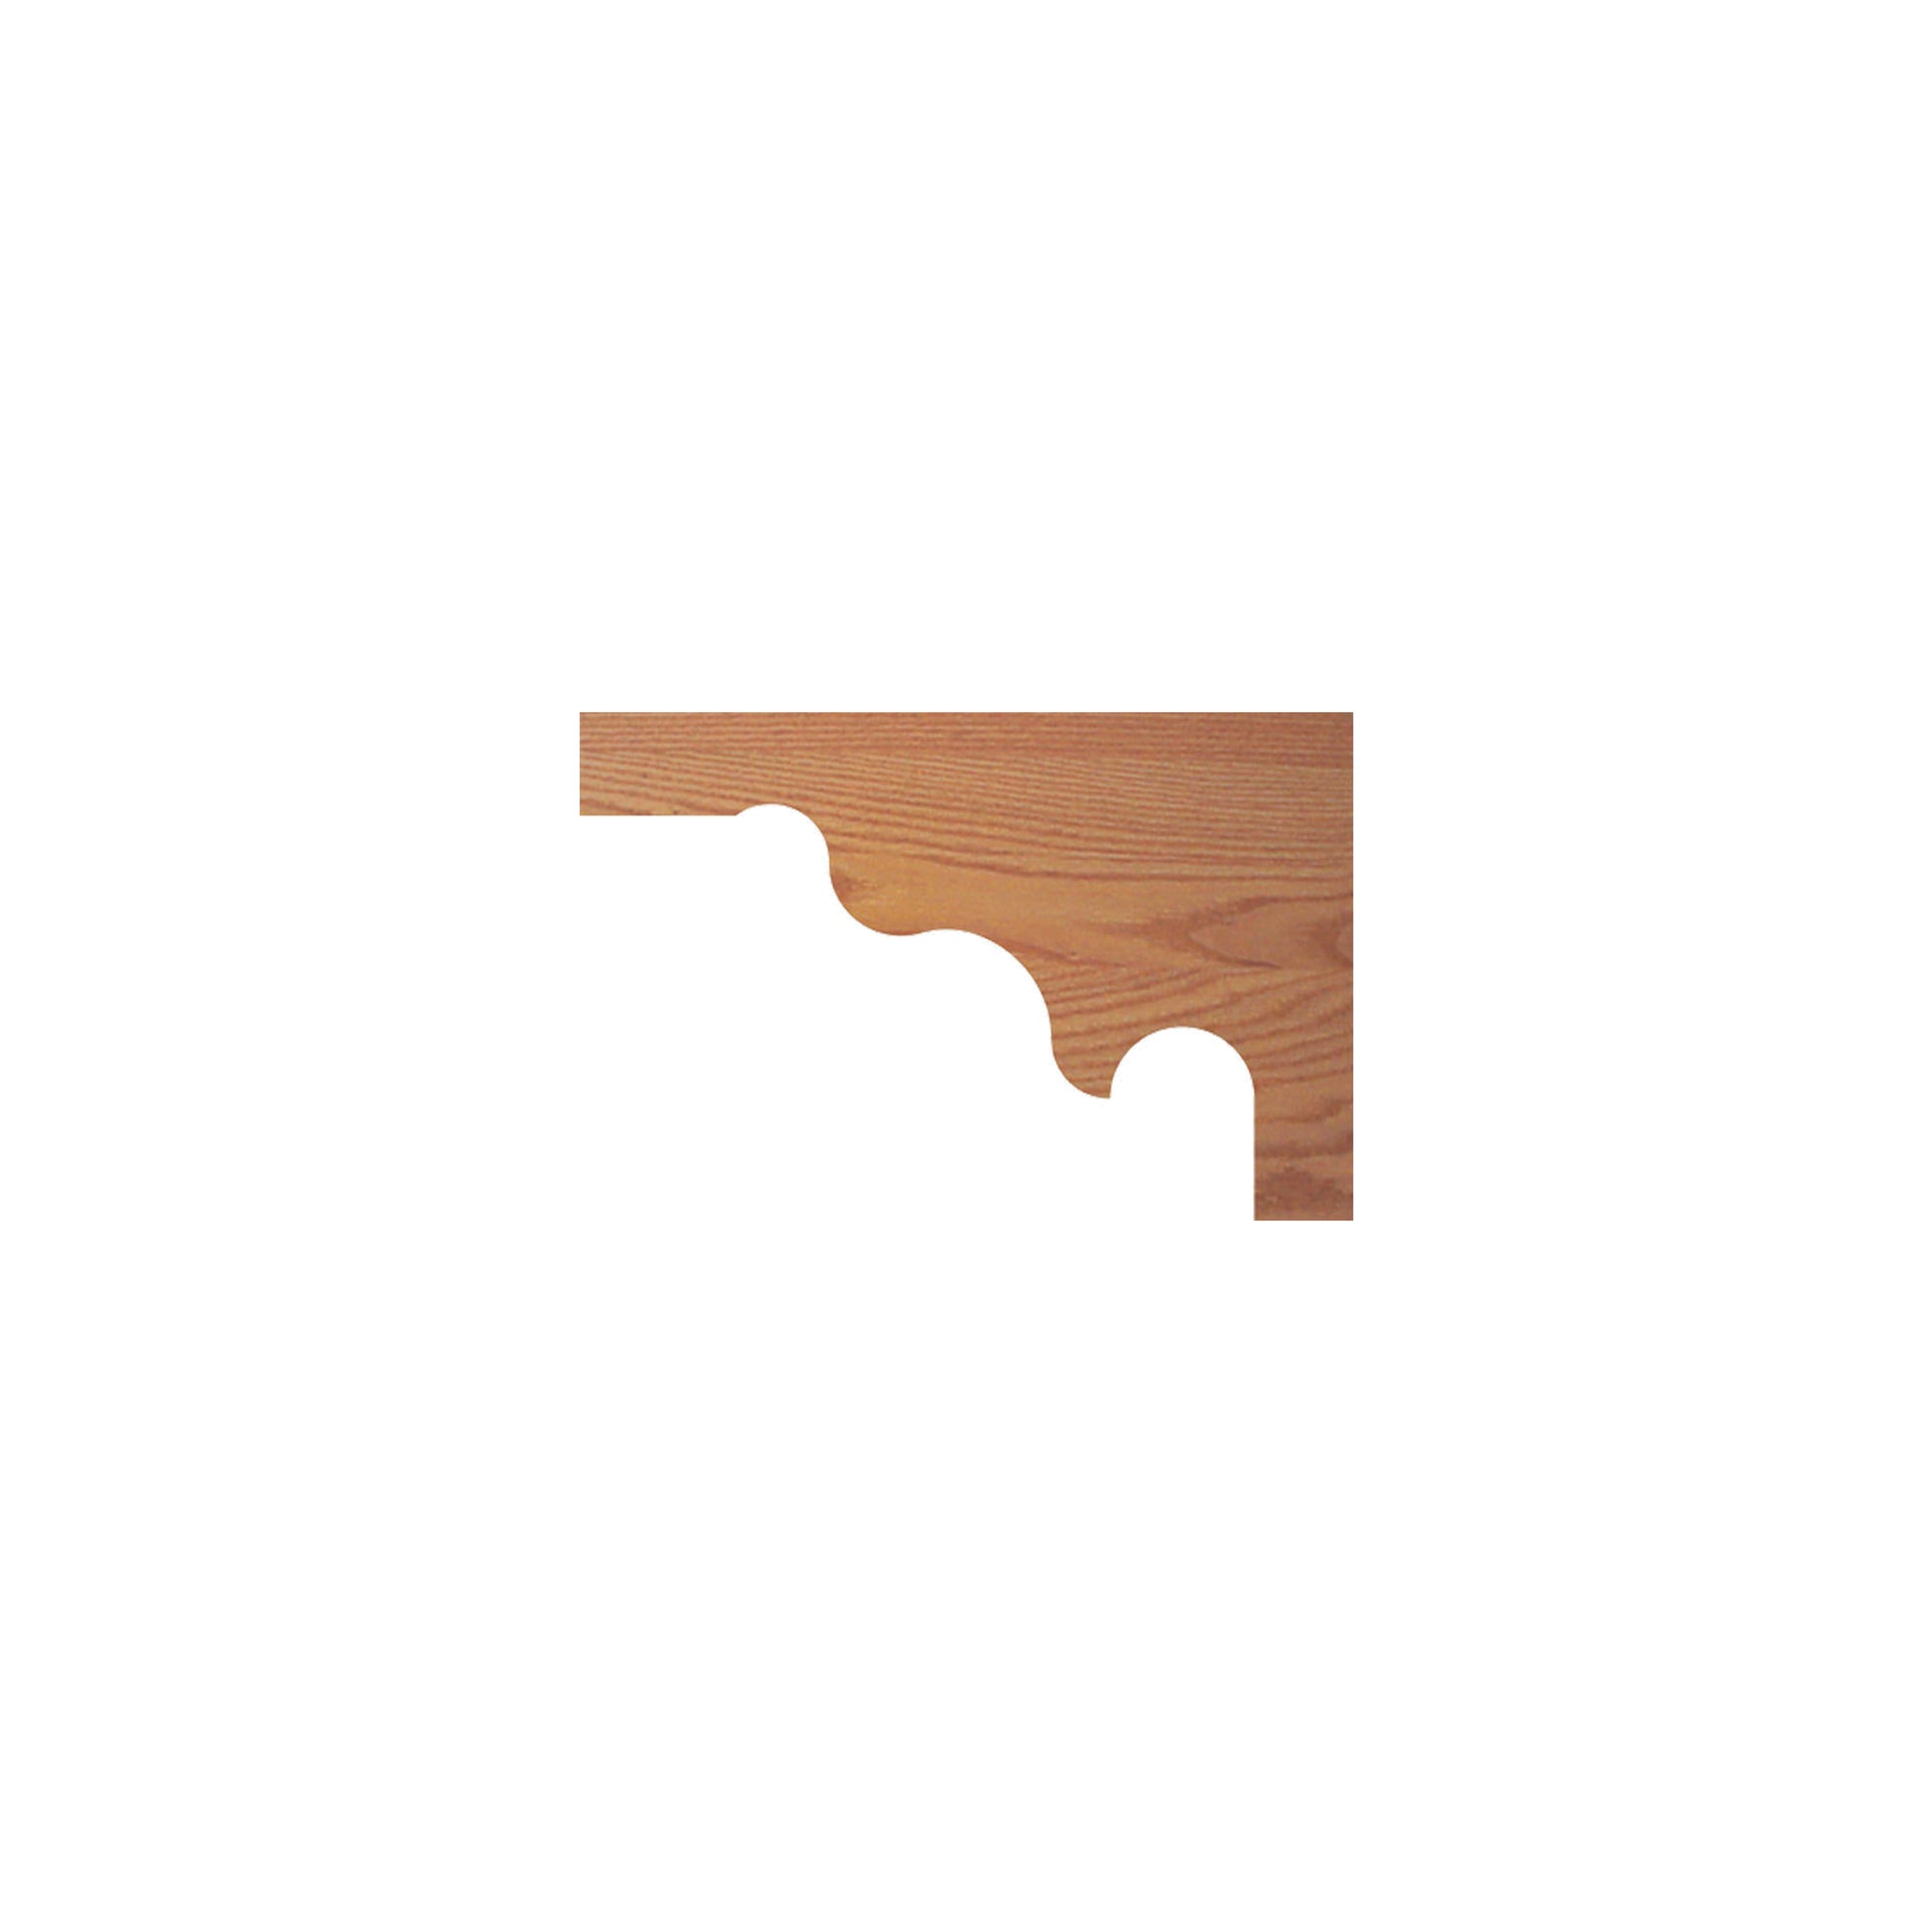 "Decorative 12""W x 8-1/4""H Stair Tread Bracket (1080, 1090)"